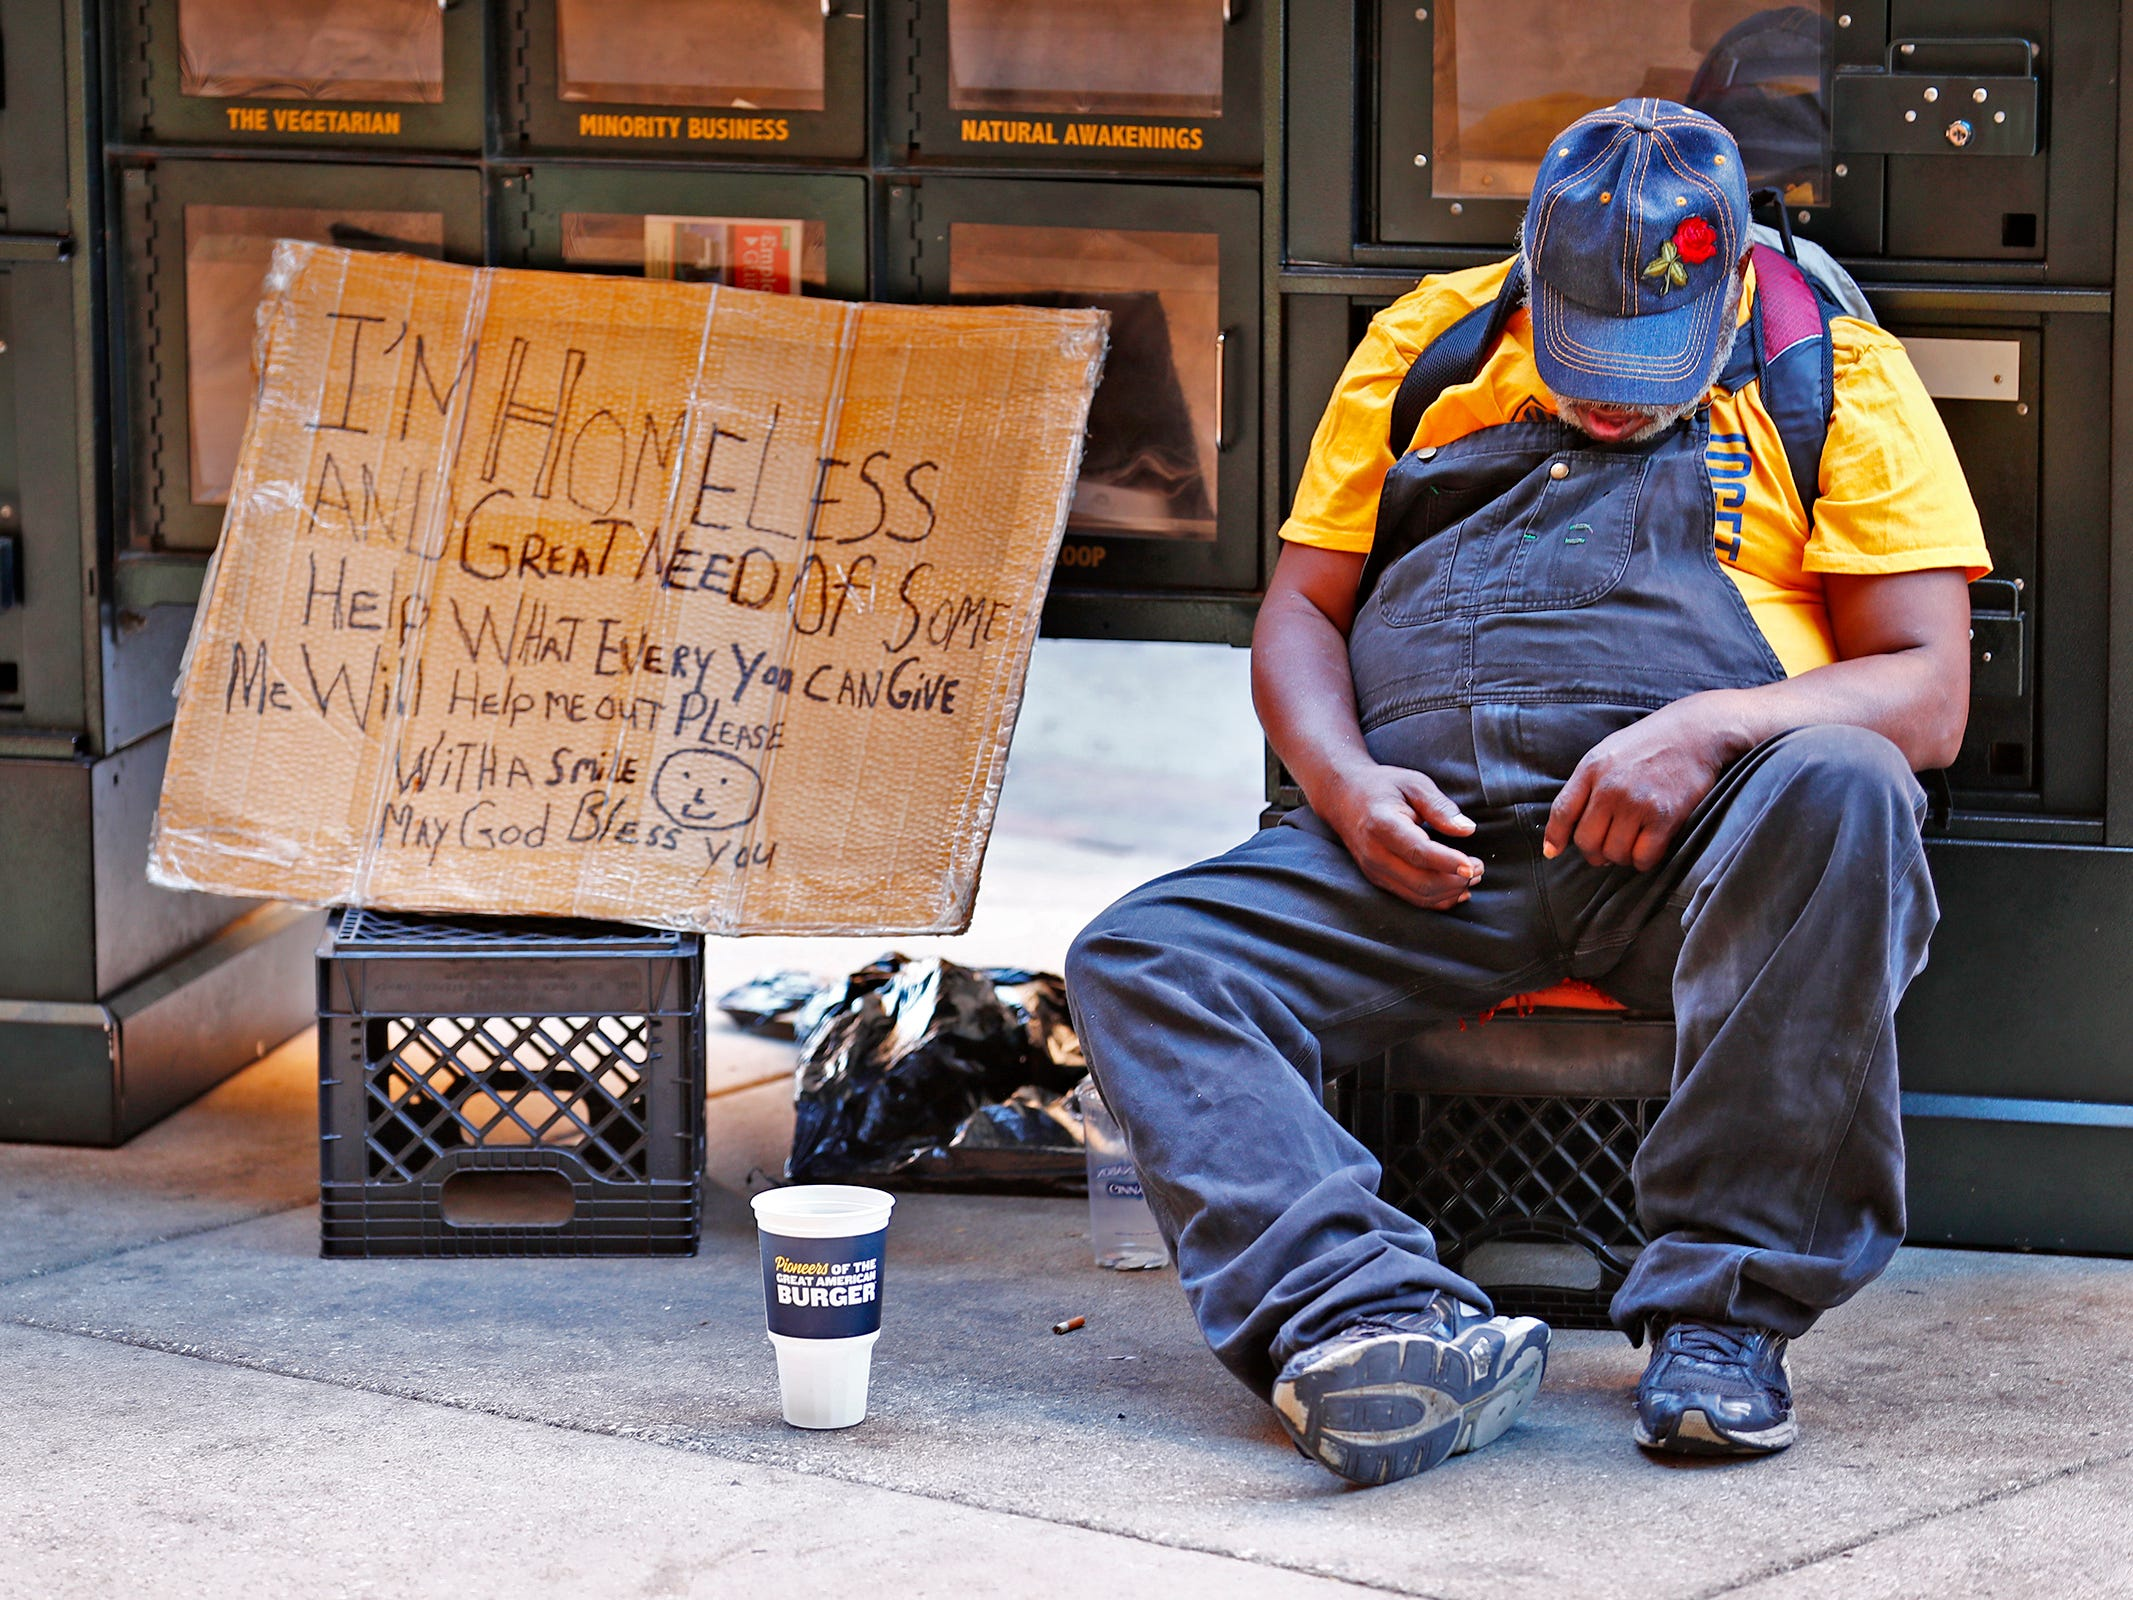 A homeless man sleeps in Illinois St. in downtown Indianapolis, Thursday, Aug. 9, 2018.  Coalition for Homelessness Intervention & Prevention (CHIP) and the city of Indianapolis have proposed a plan to end homelessness in the city by 2023.